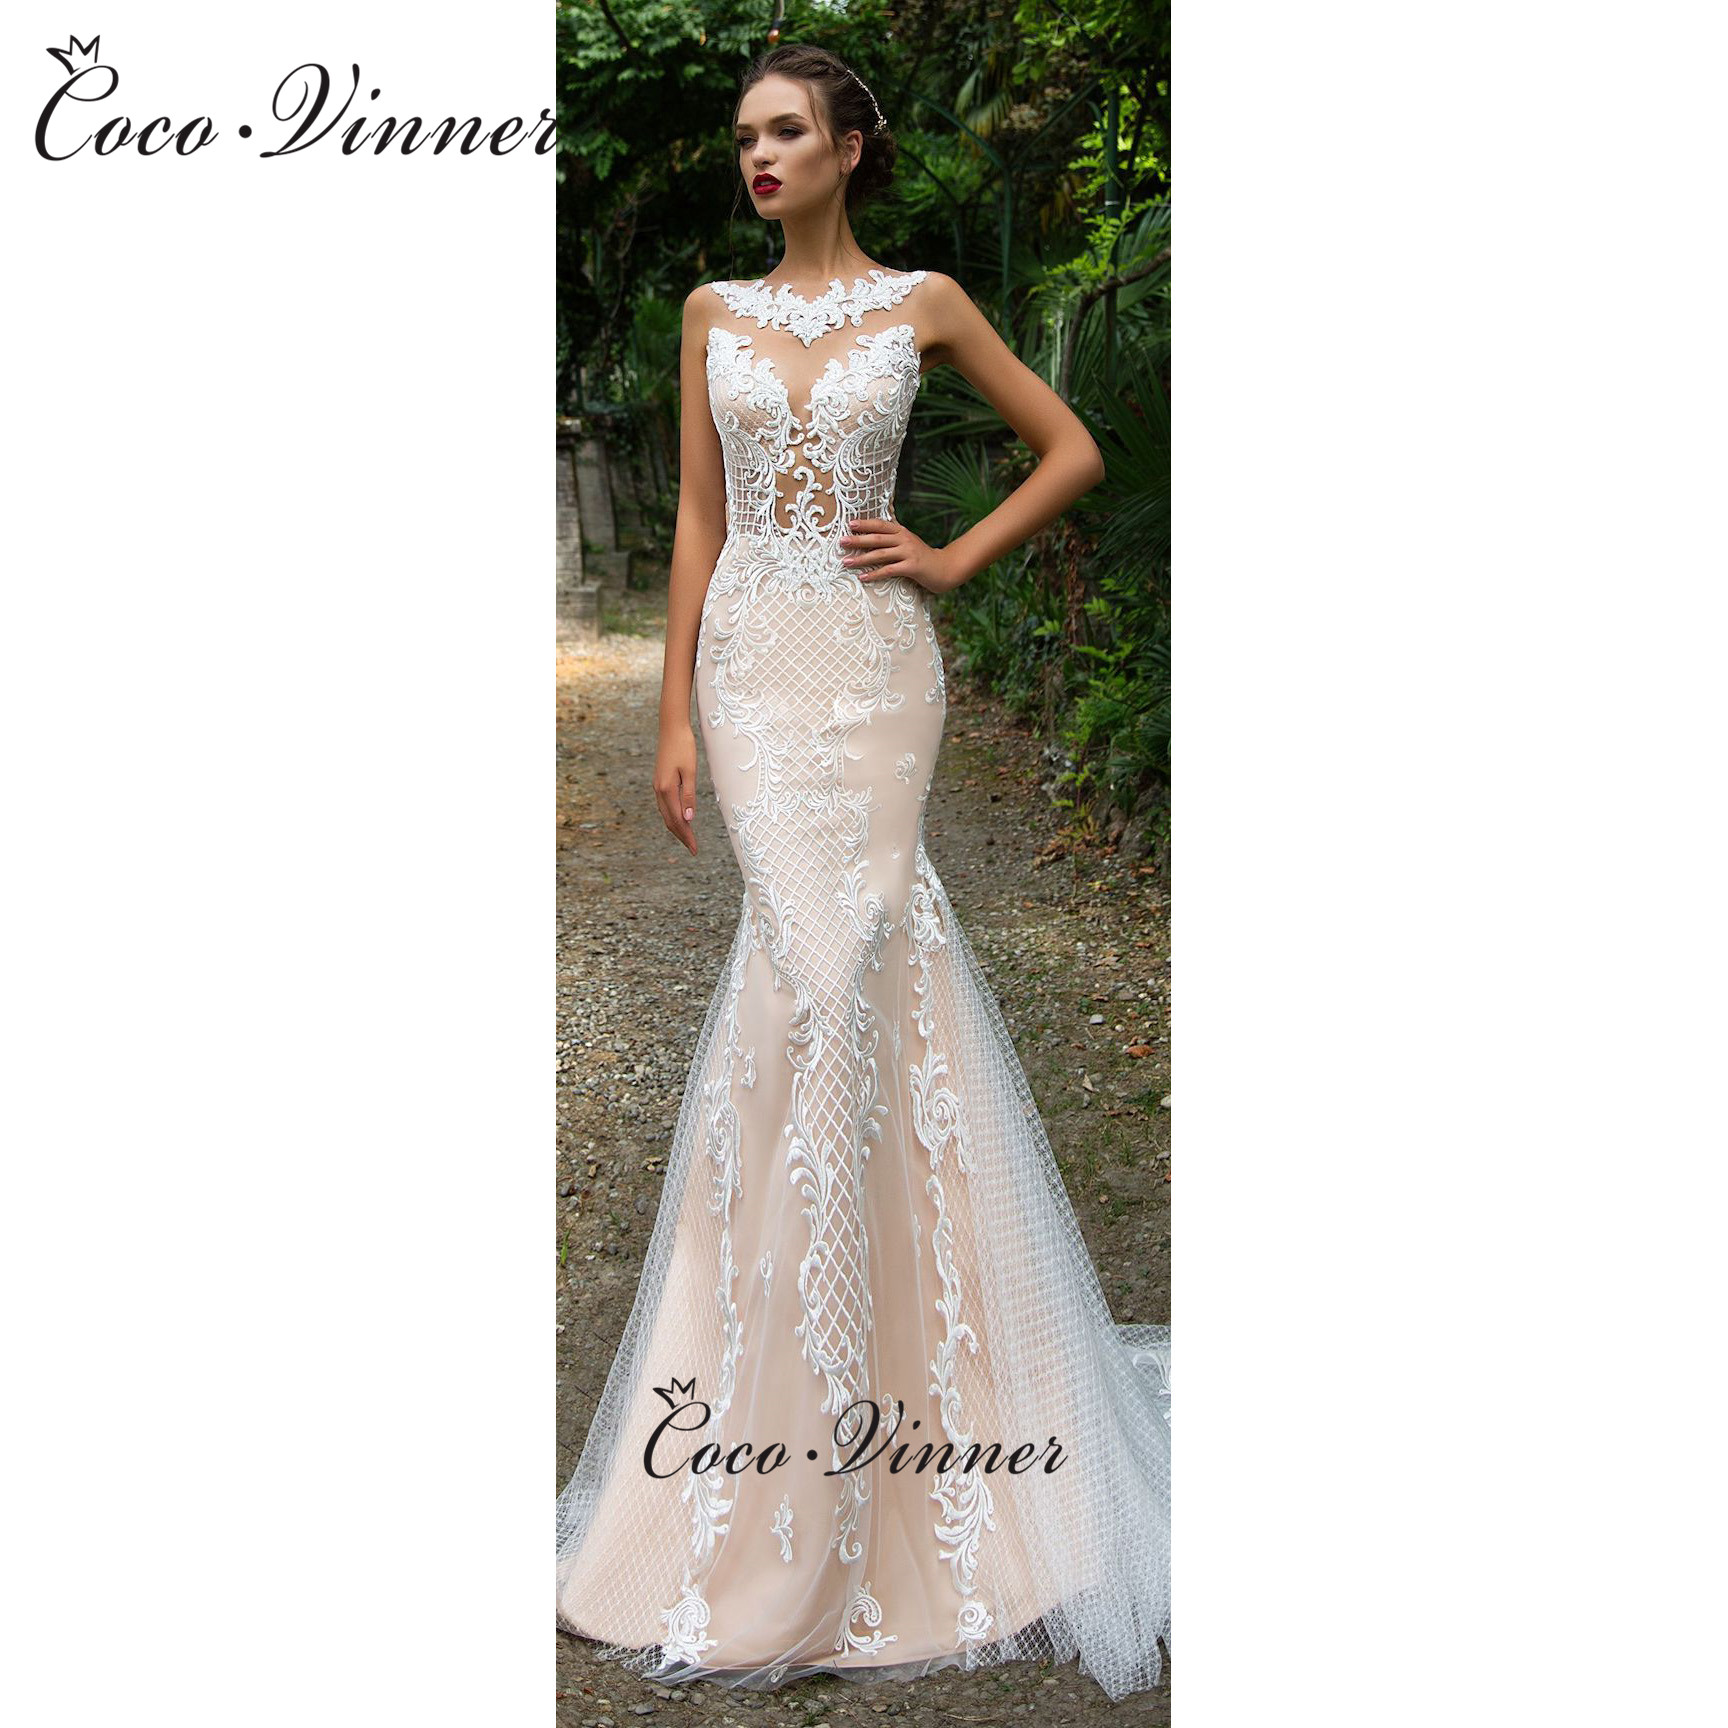 Delicate Embroidery Illusion Sleeves Sweetheart Neck Mermaid Wedding Dress Champagne W0587